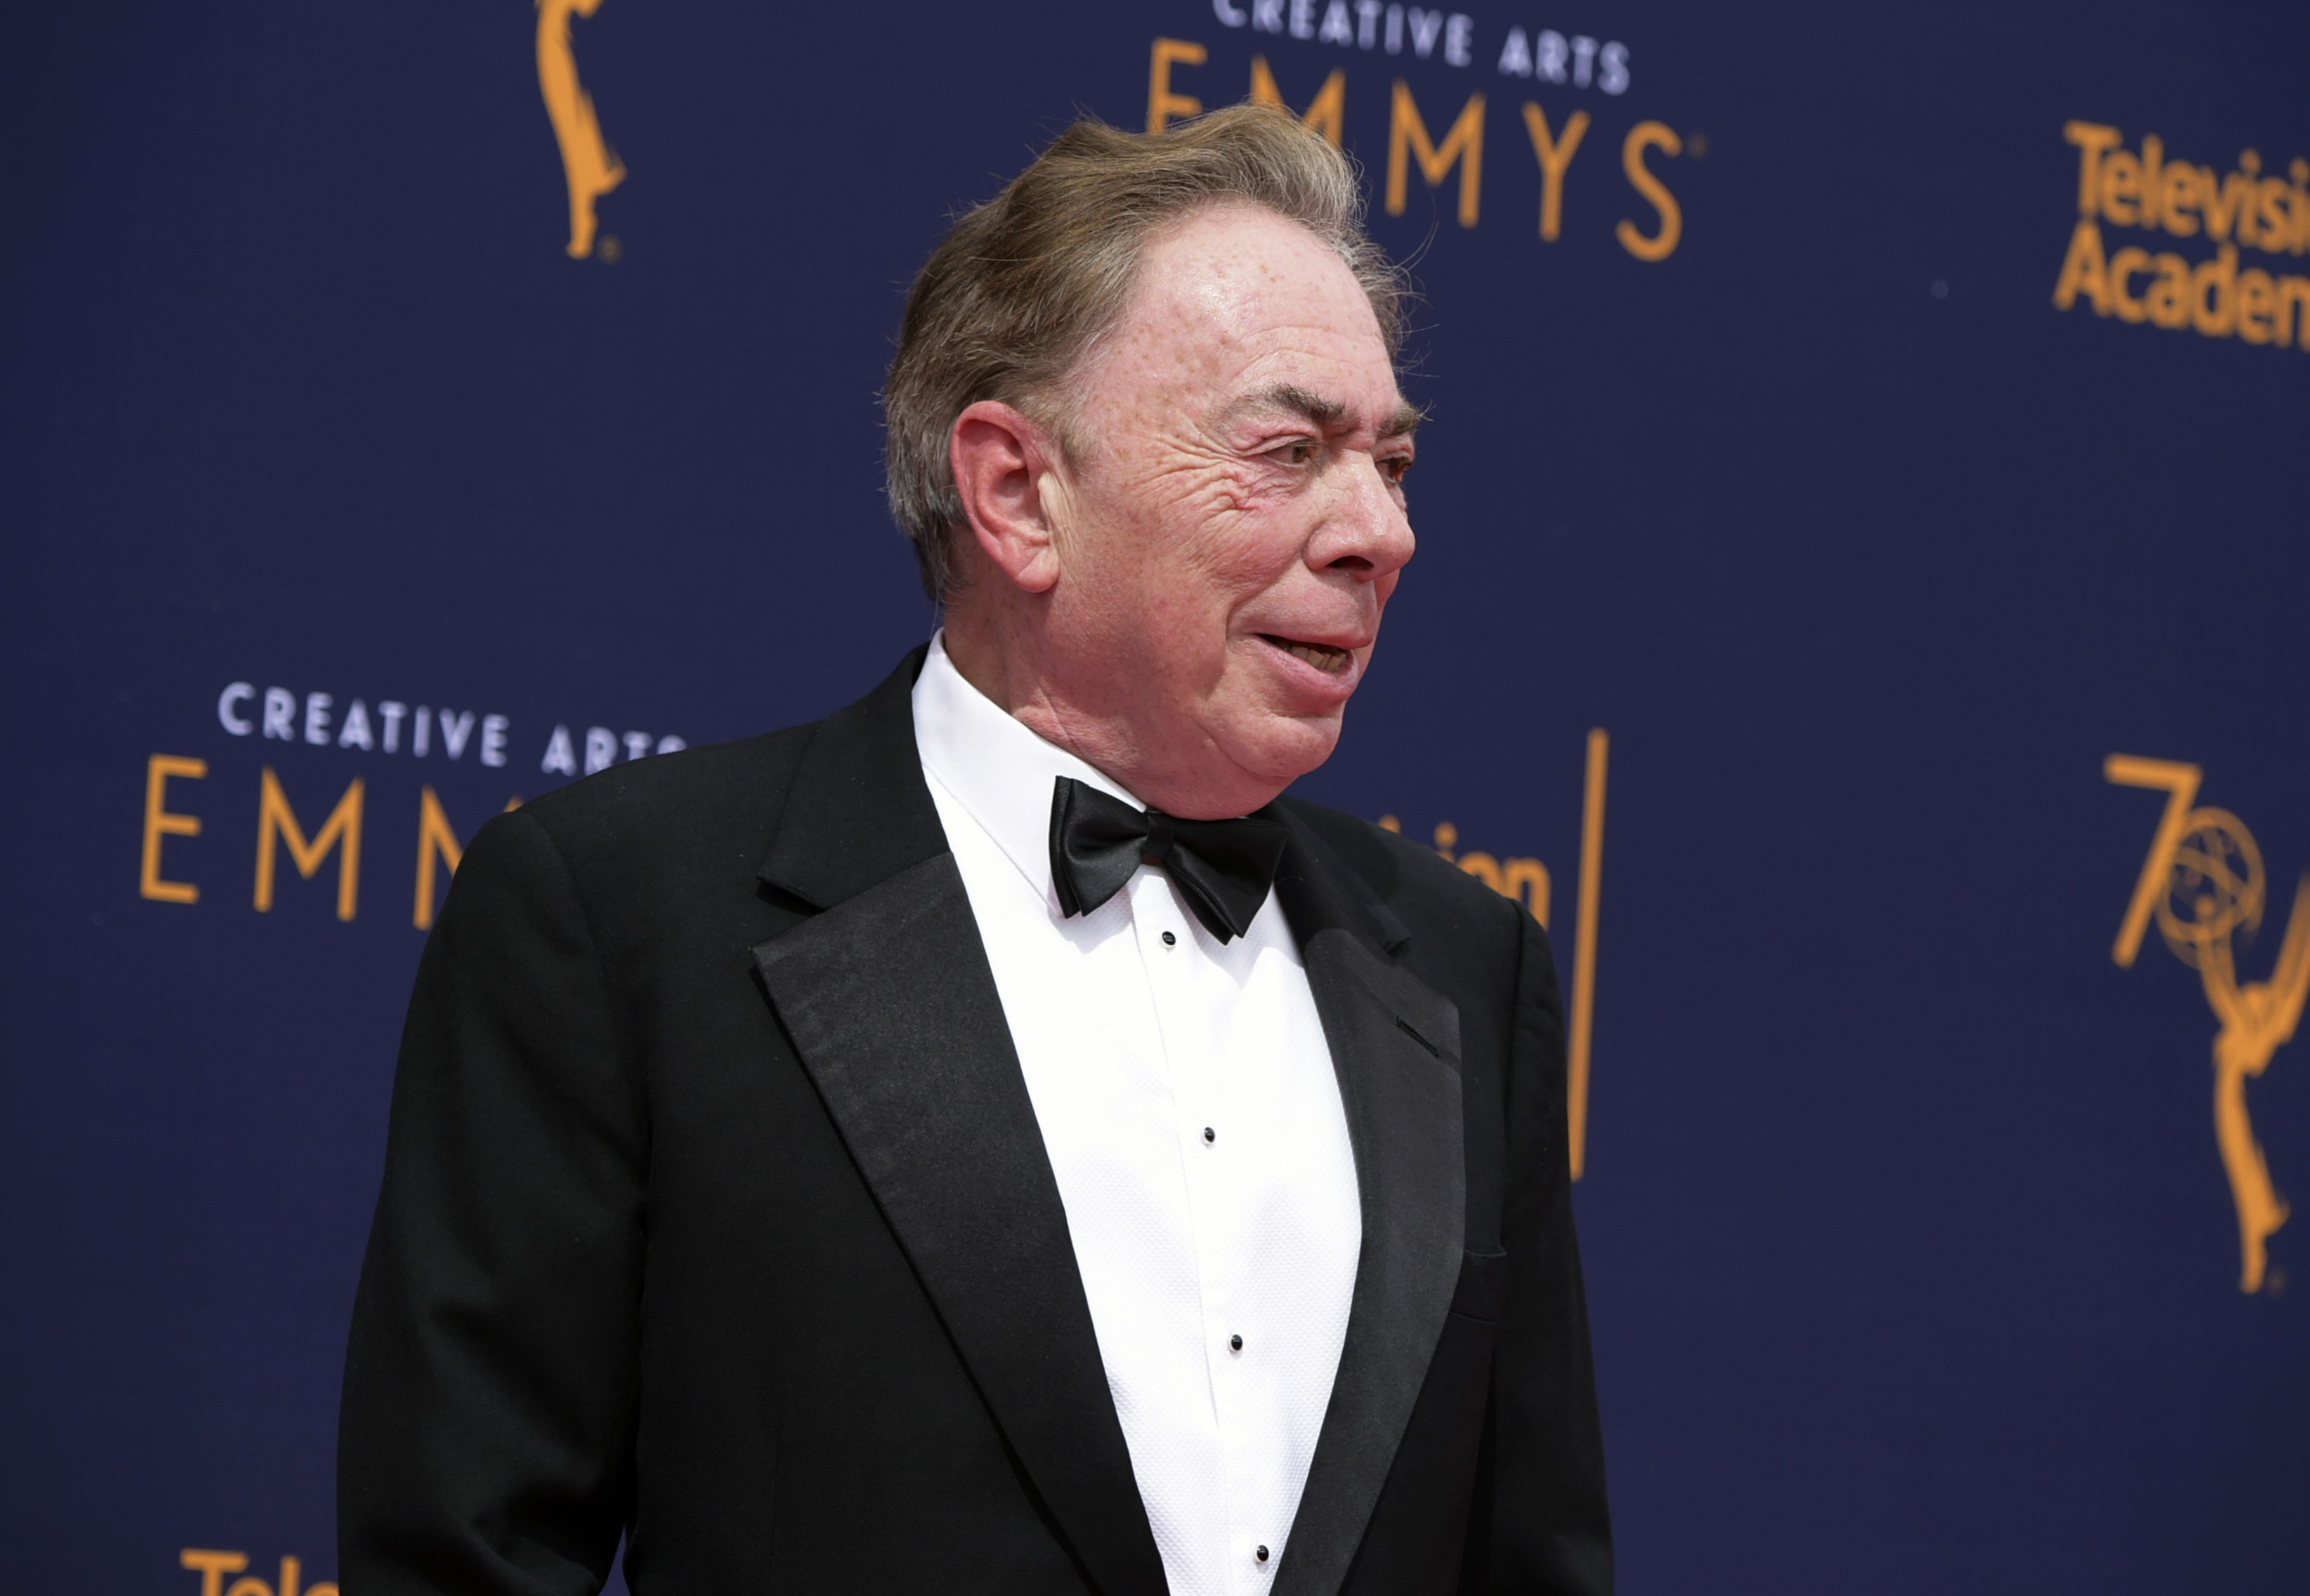 Andrew Lloyd Webber arrives at night two of the Creative Arts Emmy Awards at The Microsoft Theater on Sunday, Sept. 9, 2018, in Los Angeles.